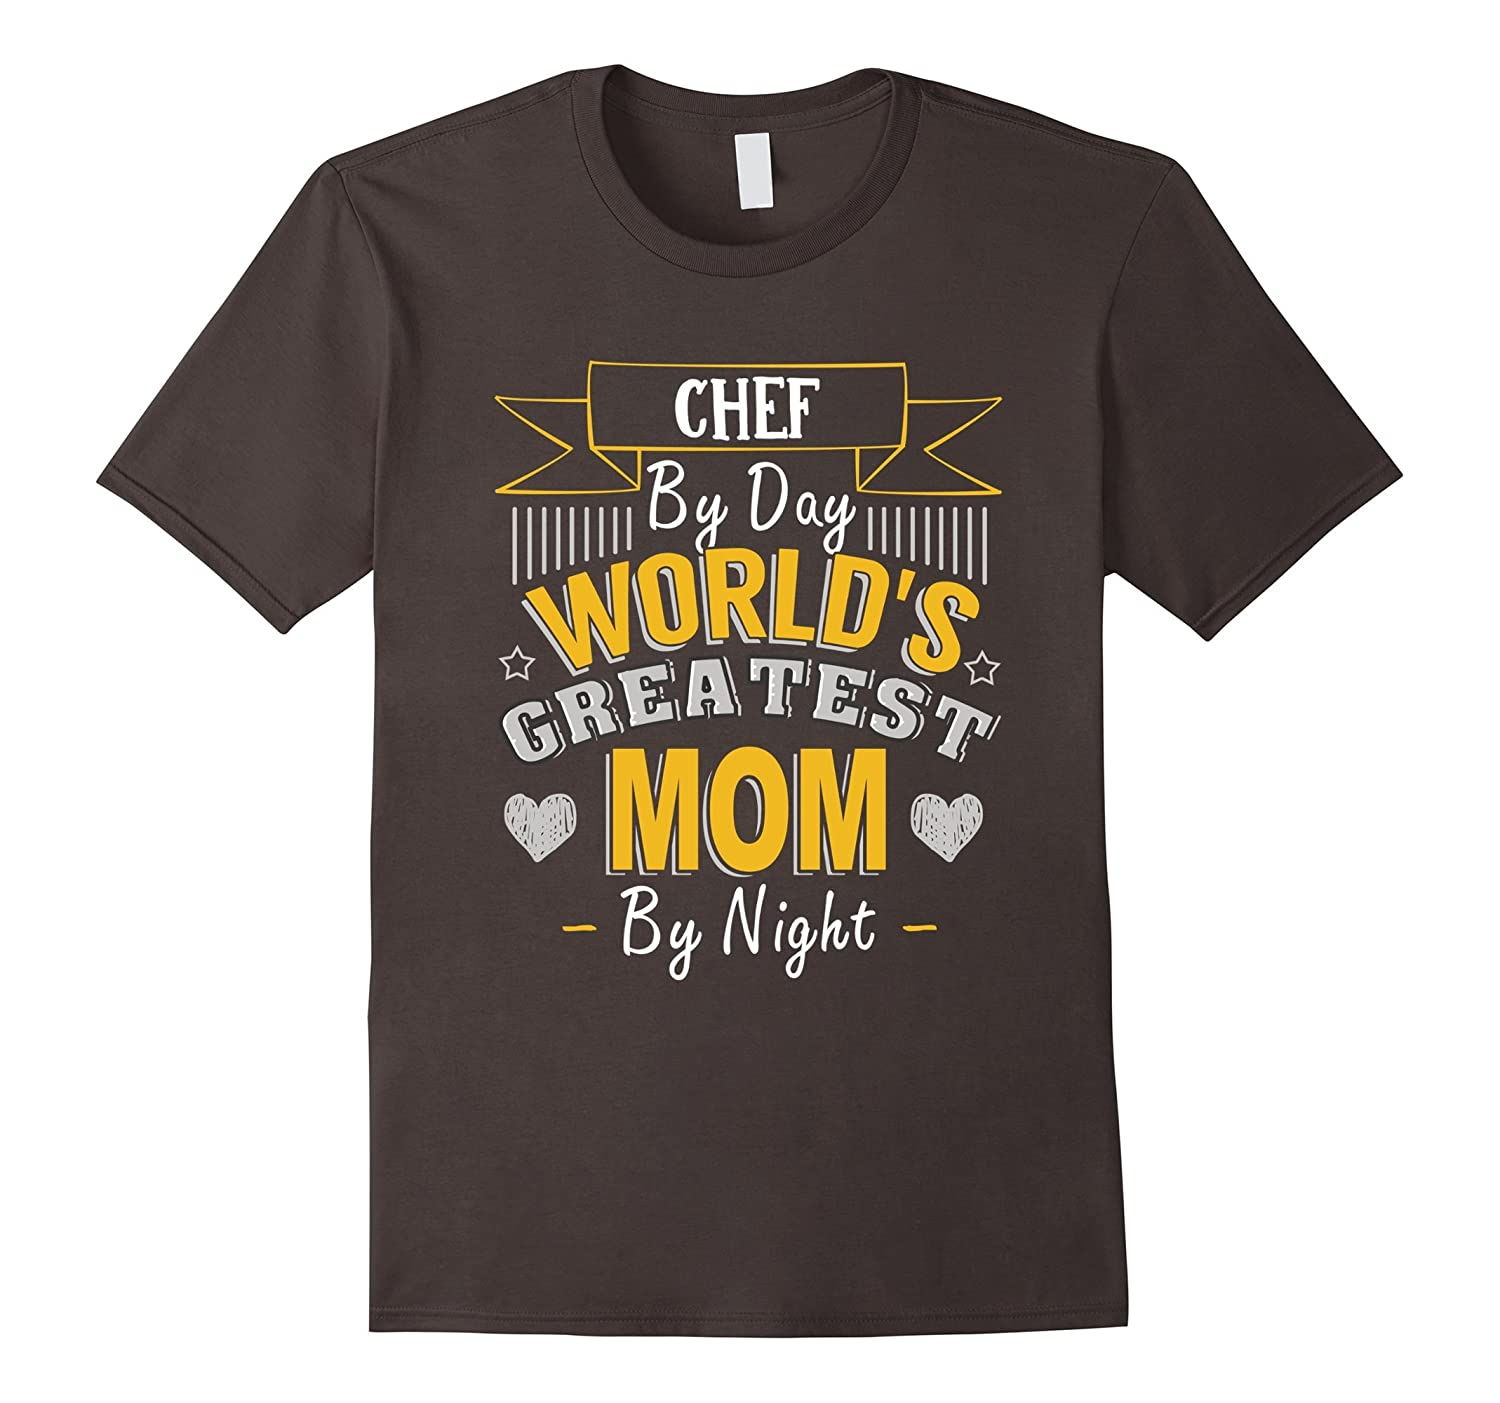 Chef By Day World's Greatest Mom By Night T Shirt